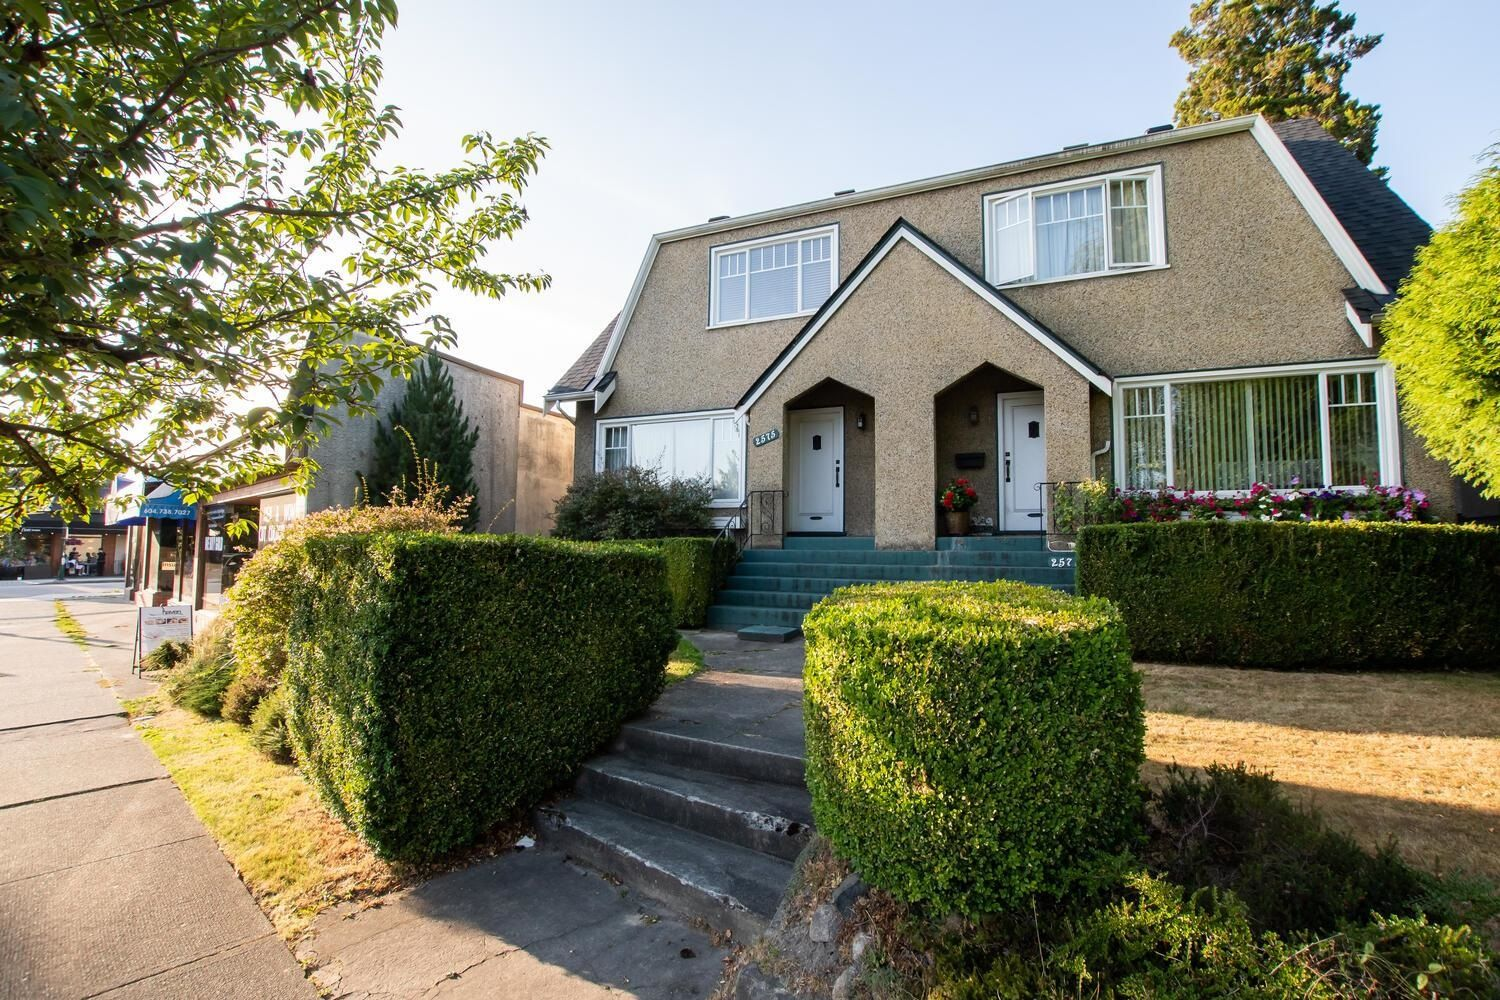 Main Photo: 2571 W 16TH Avenue in Vancouver: Kitsilano House for sale (Vancouver West)  : MLS®# R2611770